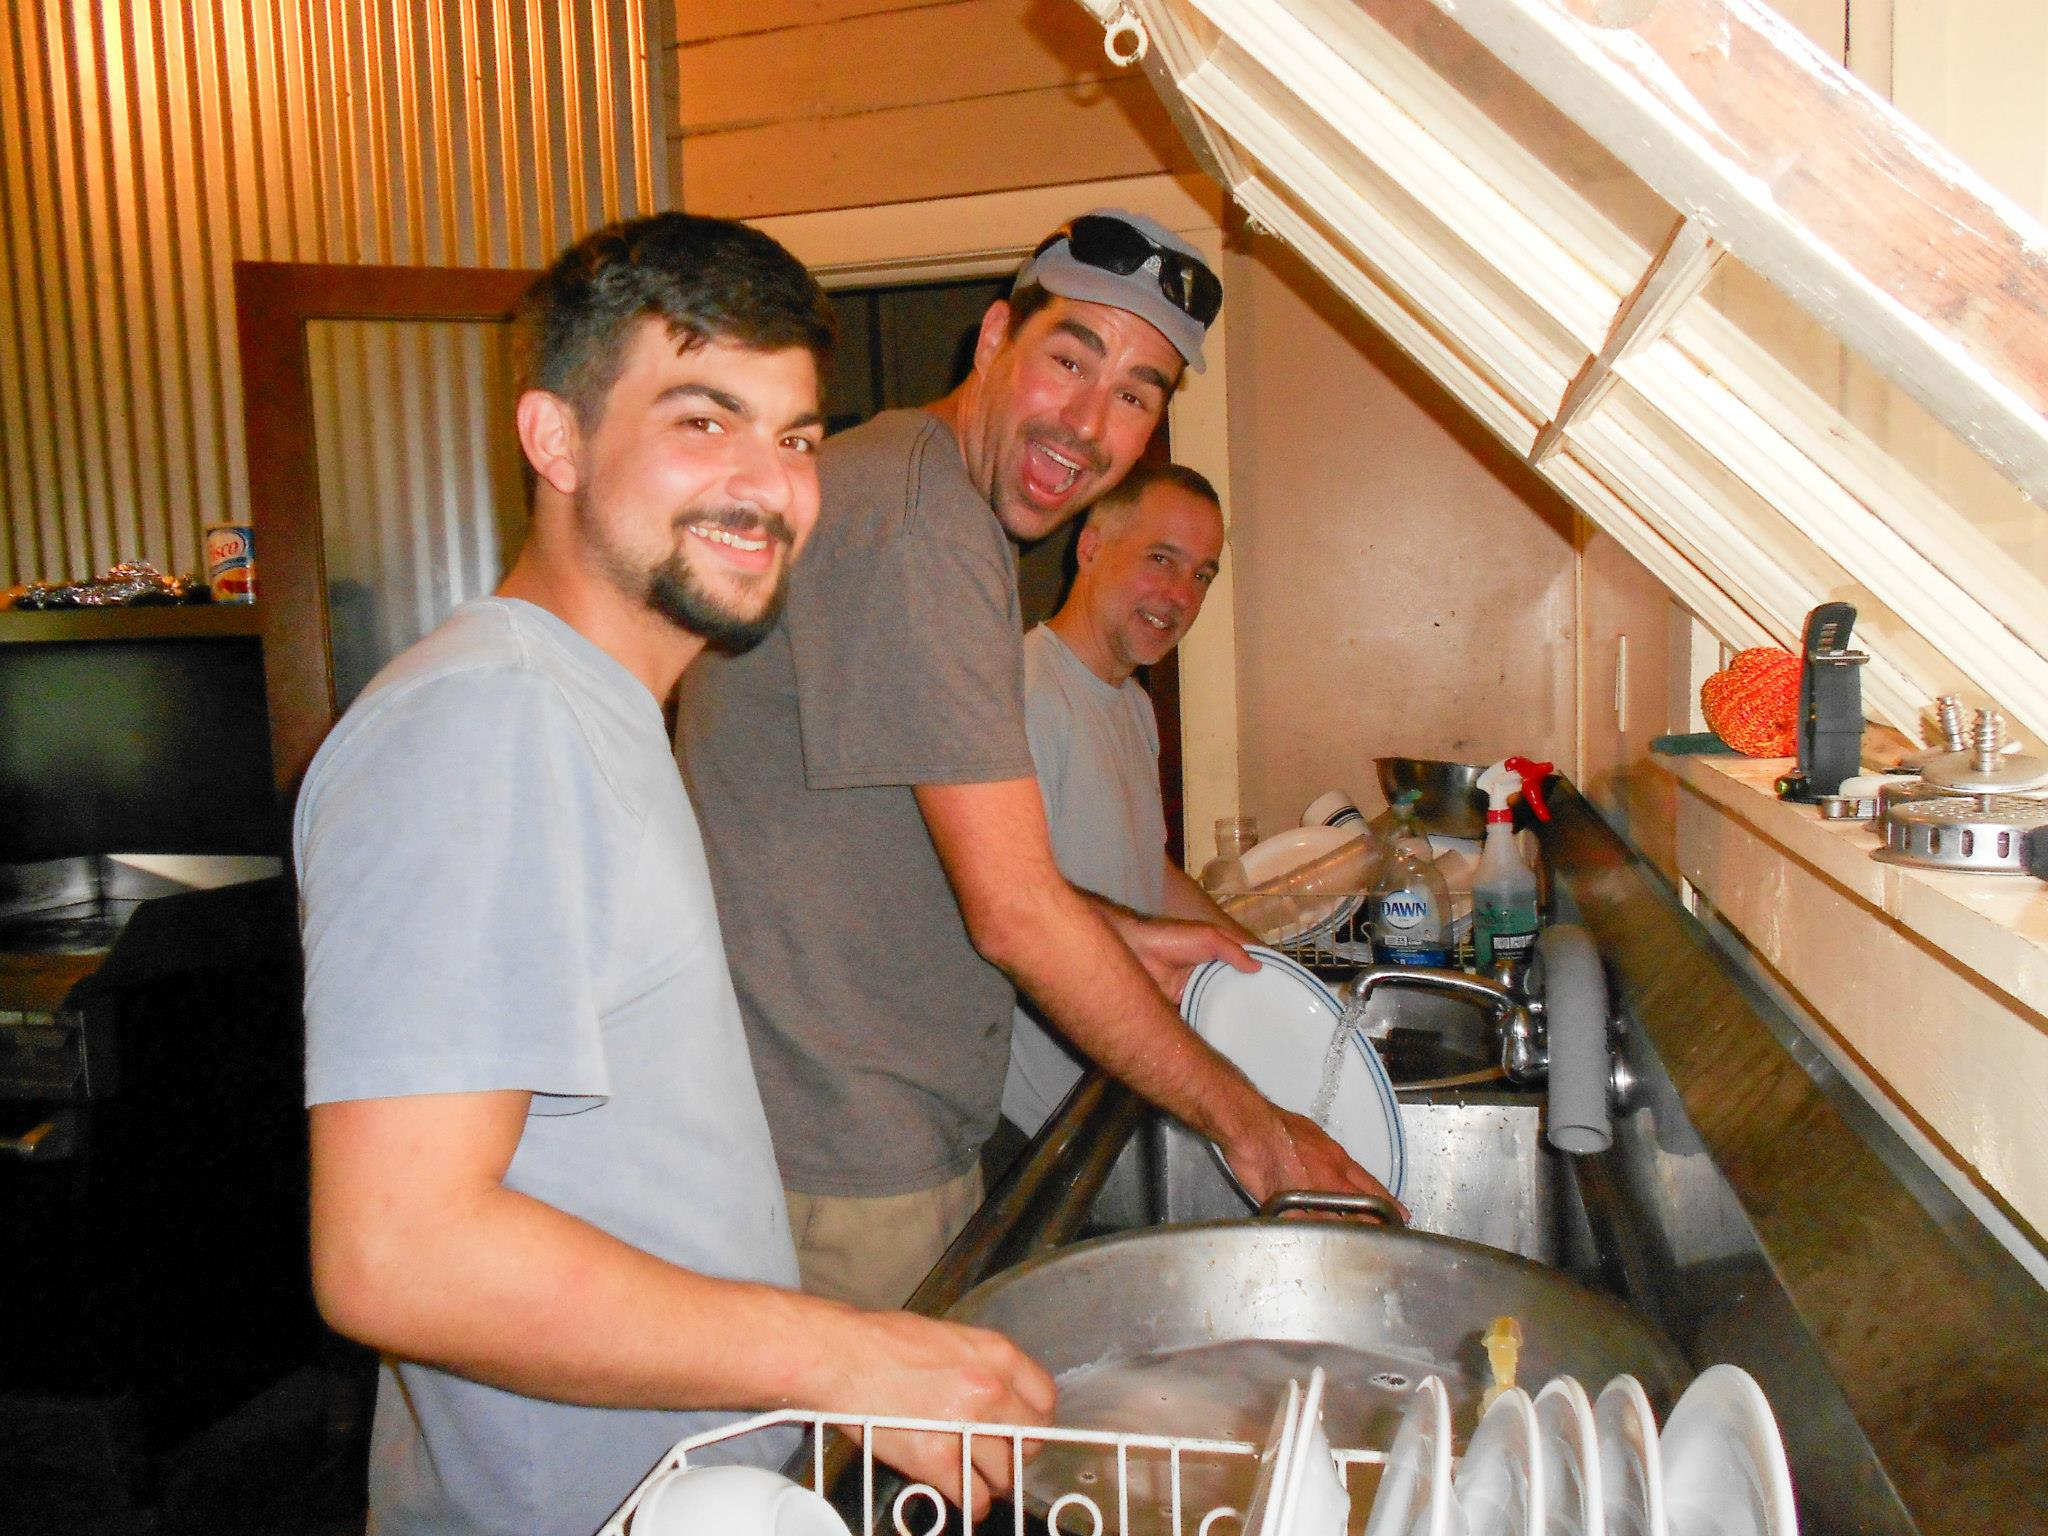 Cameron Dale, Cody Westheimer, and Stephen Lias wash the dishes at Coal Creek in 2015.